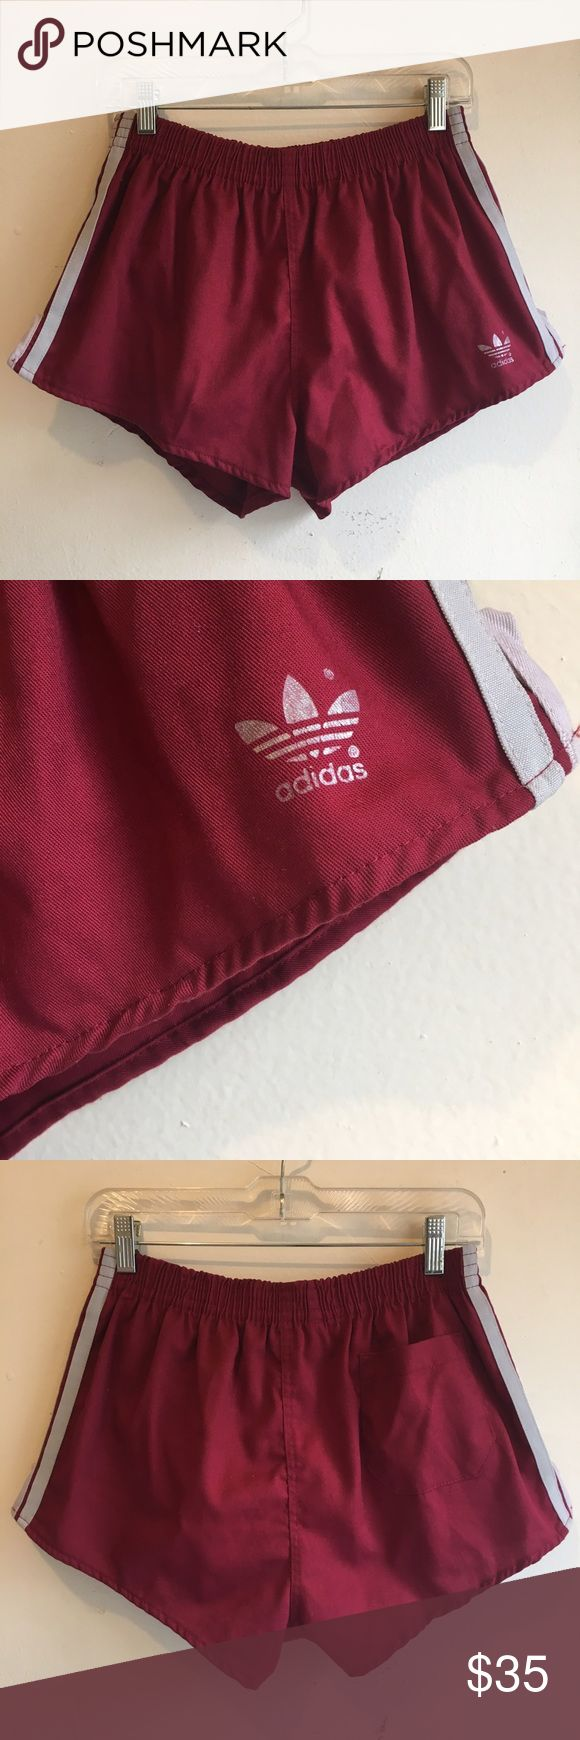 Adidas Soccer Shorts Vintage Adidas soccer shorts in perfect condition. Built in briefs. One back pocket. Drawstring. #K103 Adidas Shorts